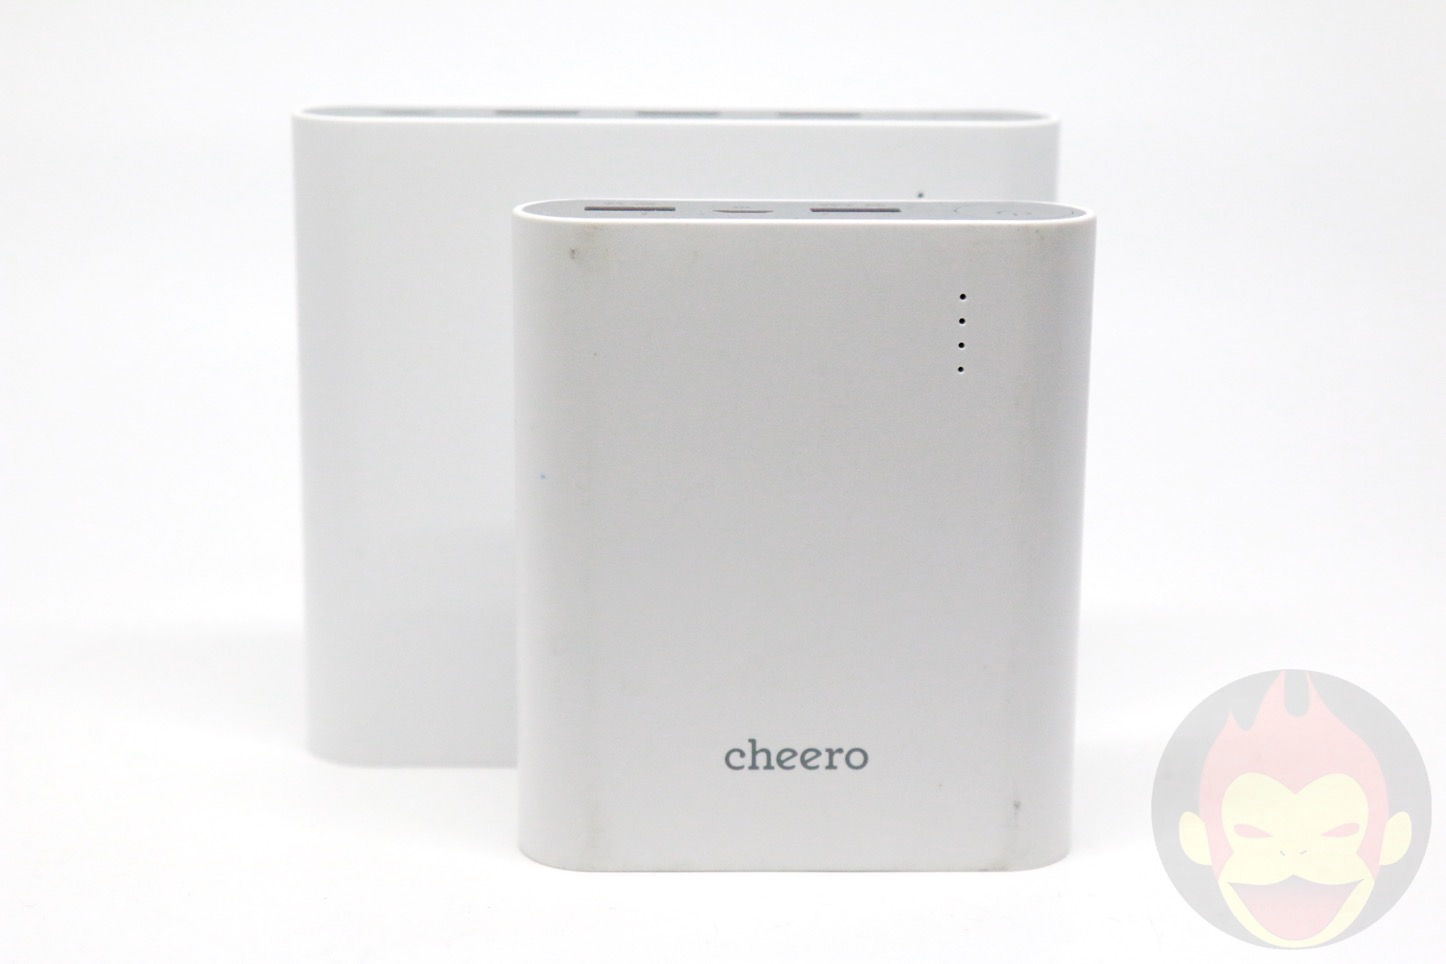 cheero-Power-Plus-3-Premium-20100-07.jpg